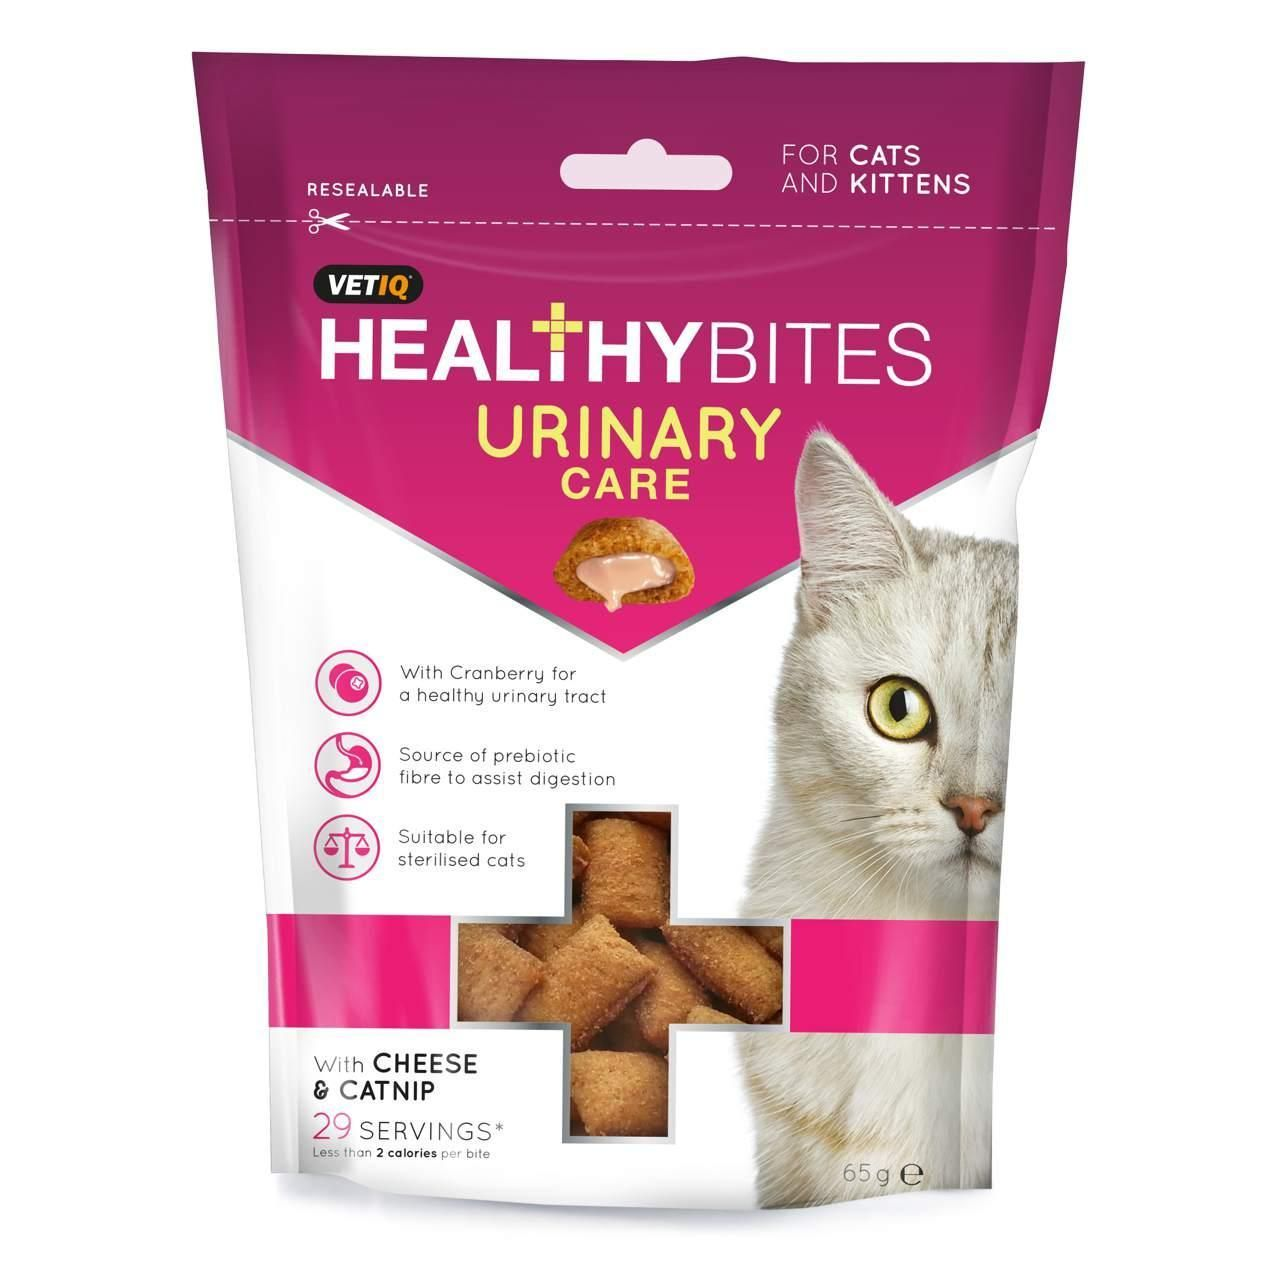 Healthy Bites Urinary Care Comprise Of A Crispy Cereal Shell With A Health Enhancing Cream Filled Centre Packed Wi Kitten Treats Cats And Kittens Healthy Bites